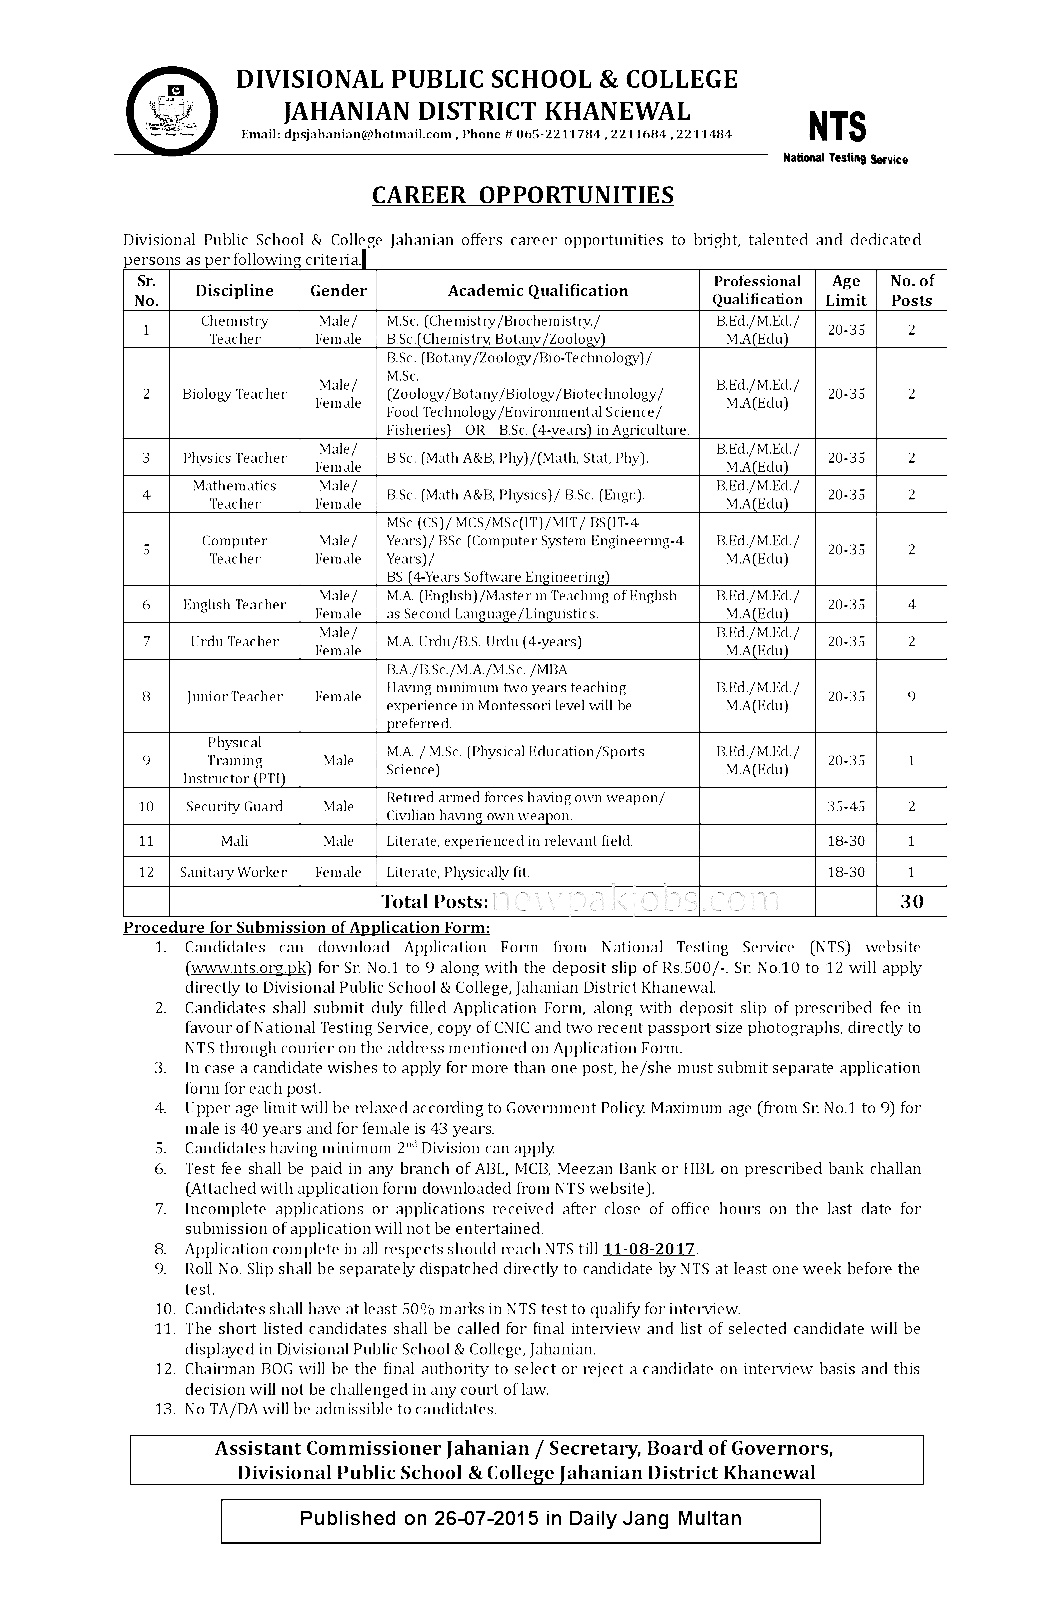 NTS Jobs in Divisional Public and College Jahanian District Khanewal 2018